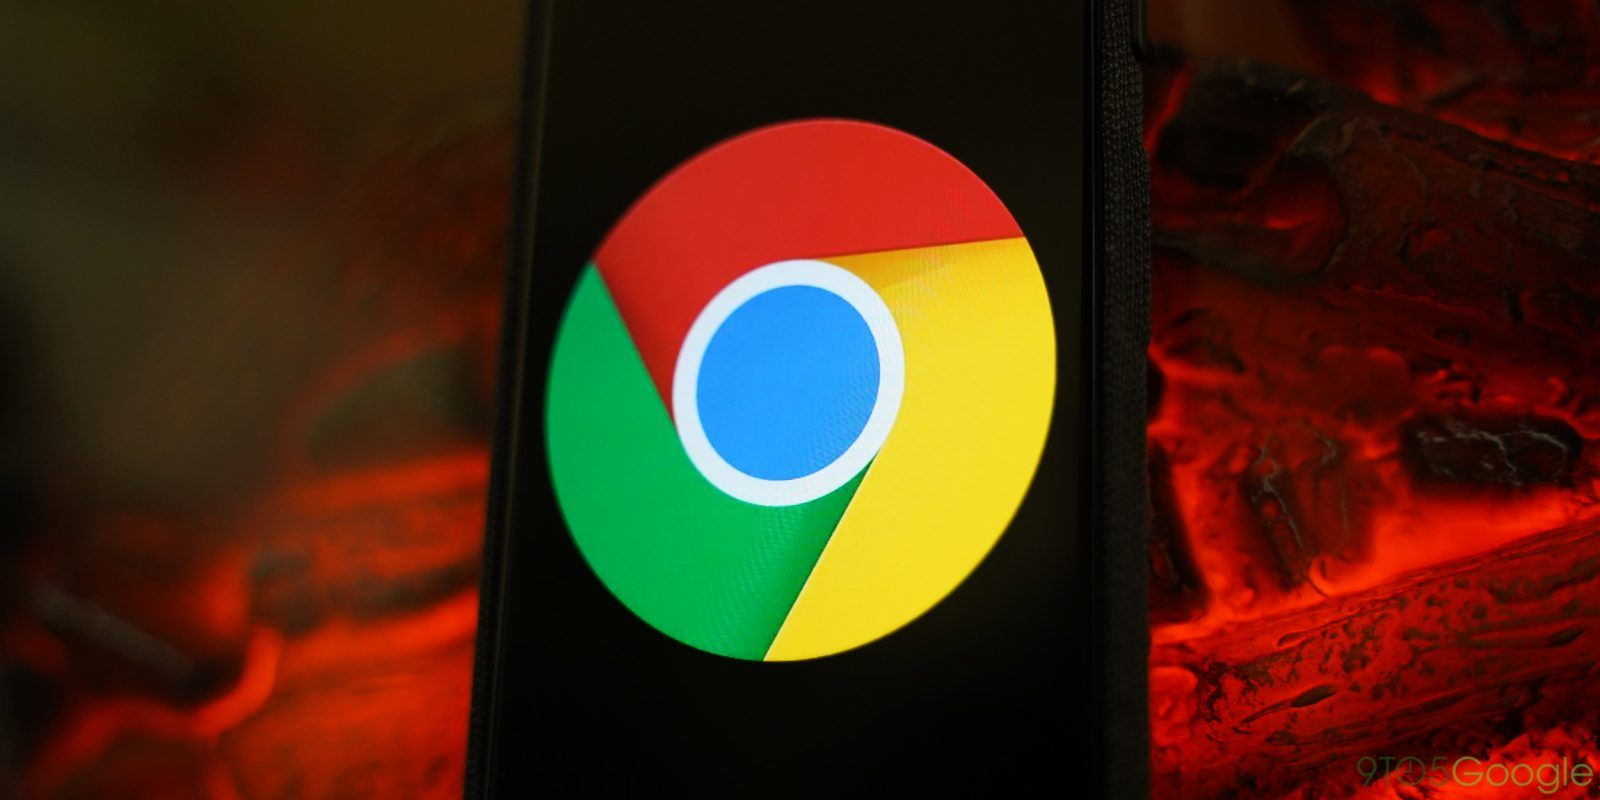 Google Chrome's Incognito fixed to hide your browsing